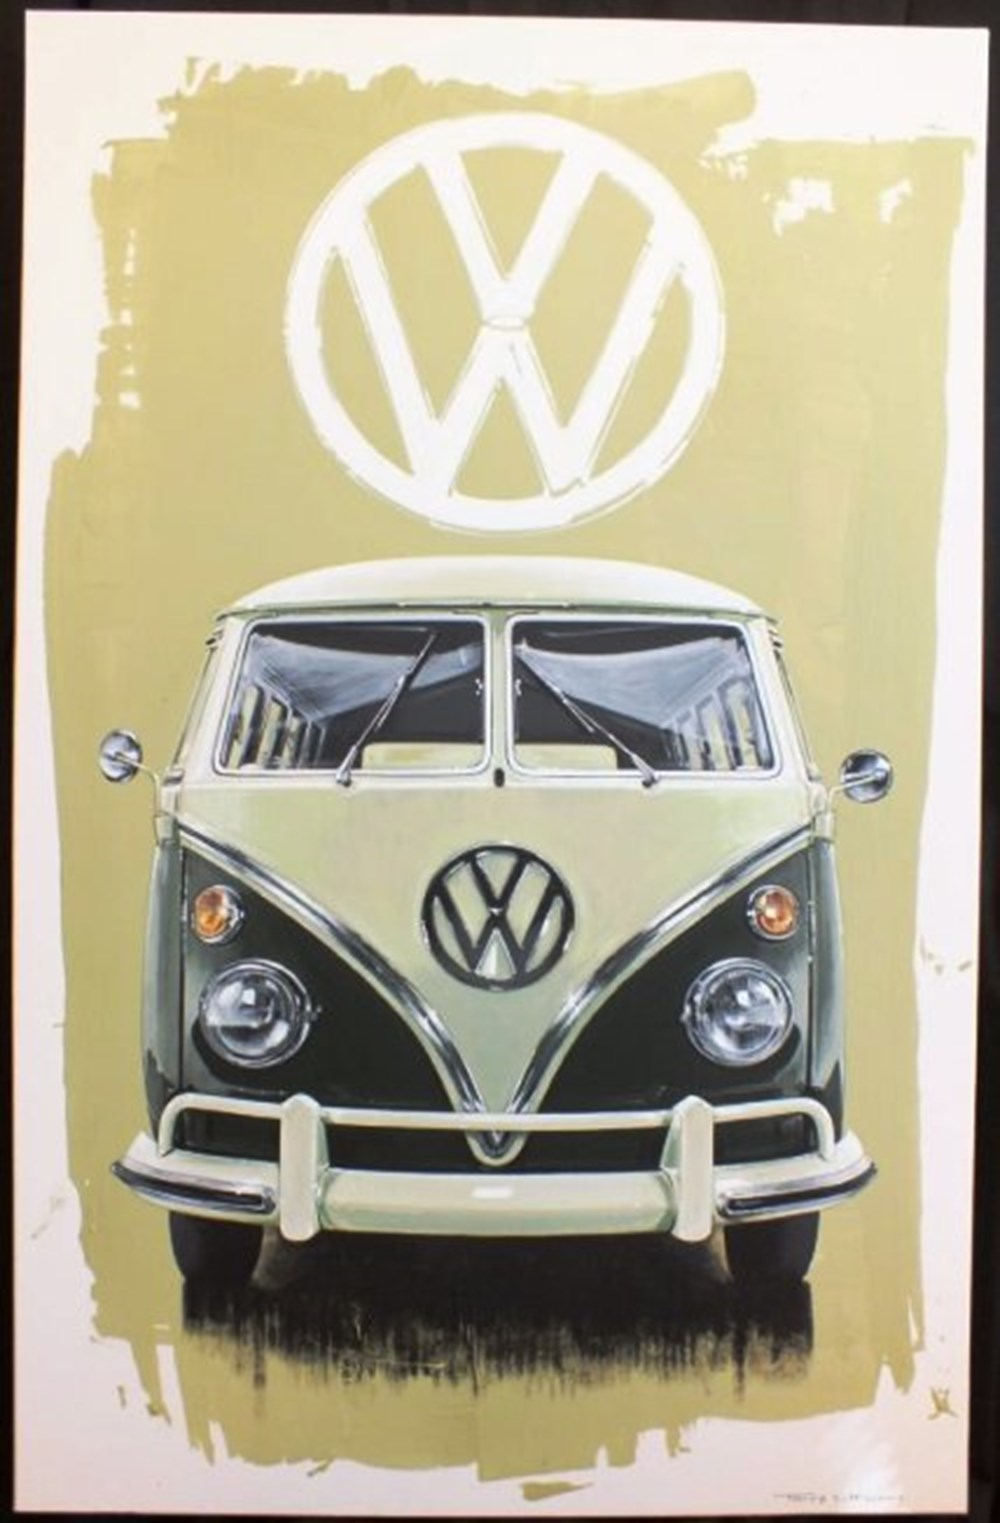 Lot 057 - VW Camper Tony Upson original